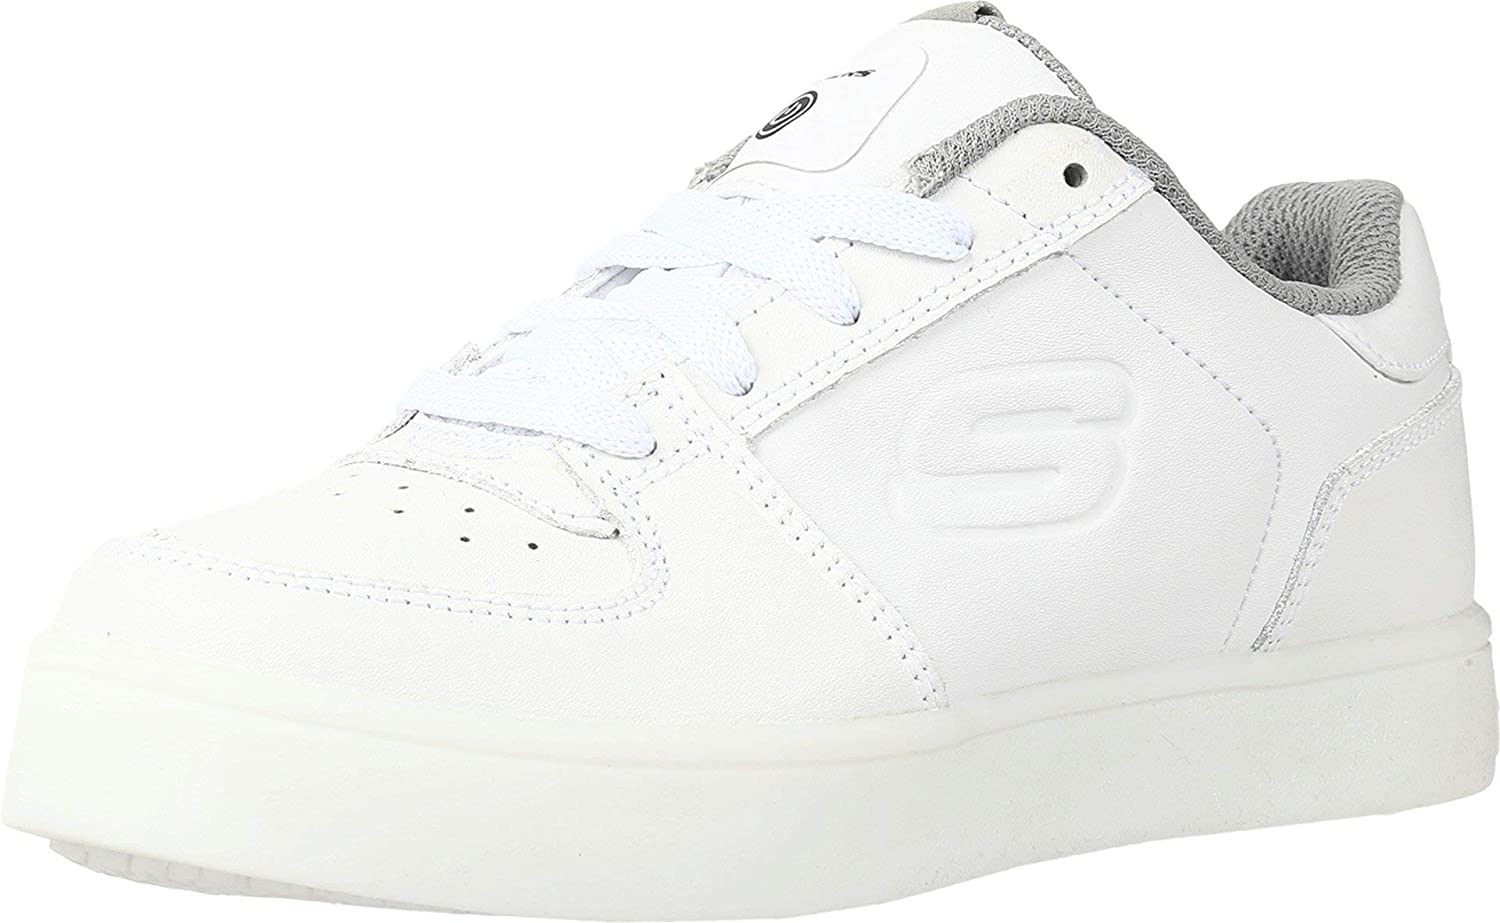 Skechers Unisex-Child Energy Special price 1 year warranty for a limited time Lights-Elate Sneaker